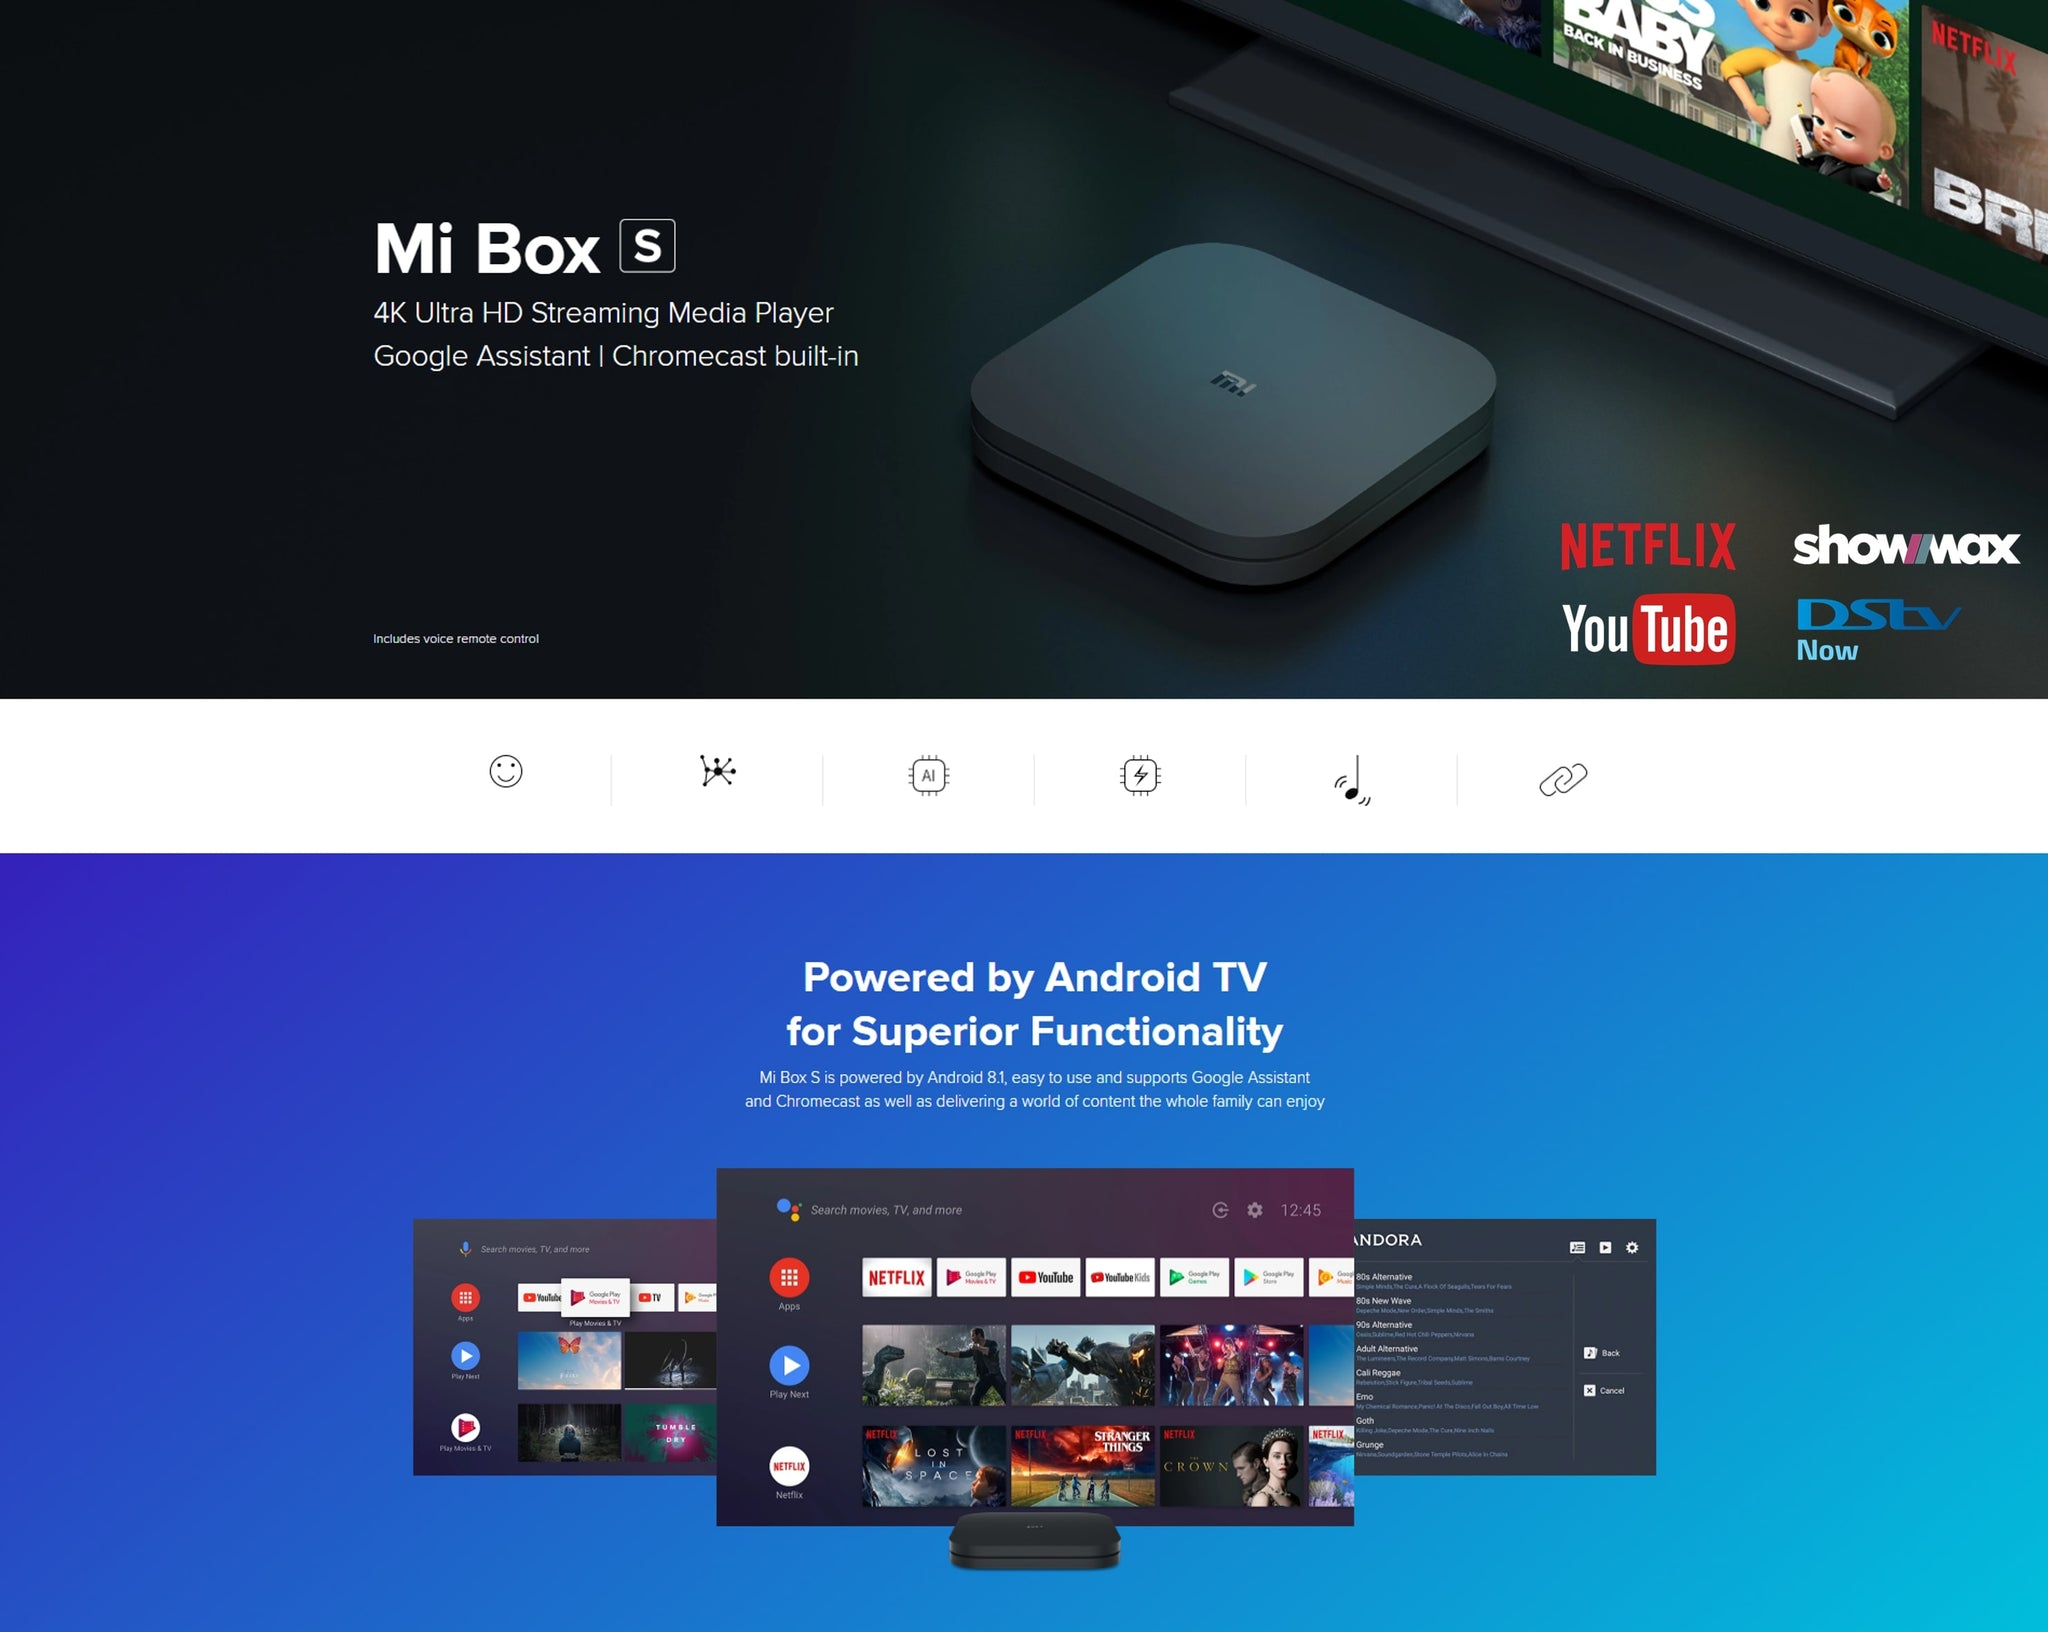 Mi Box watch Netflix, Showmax, DSTV and much more powered by Android TV